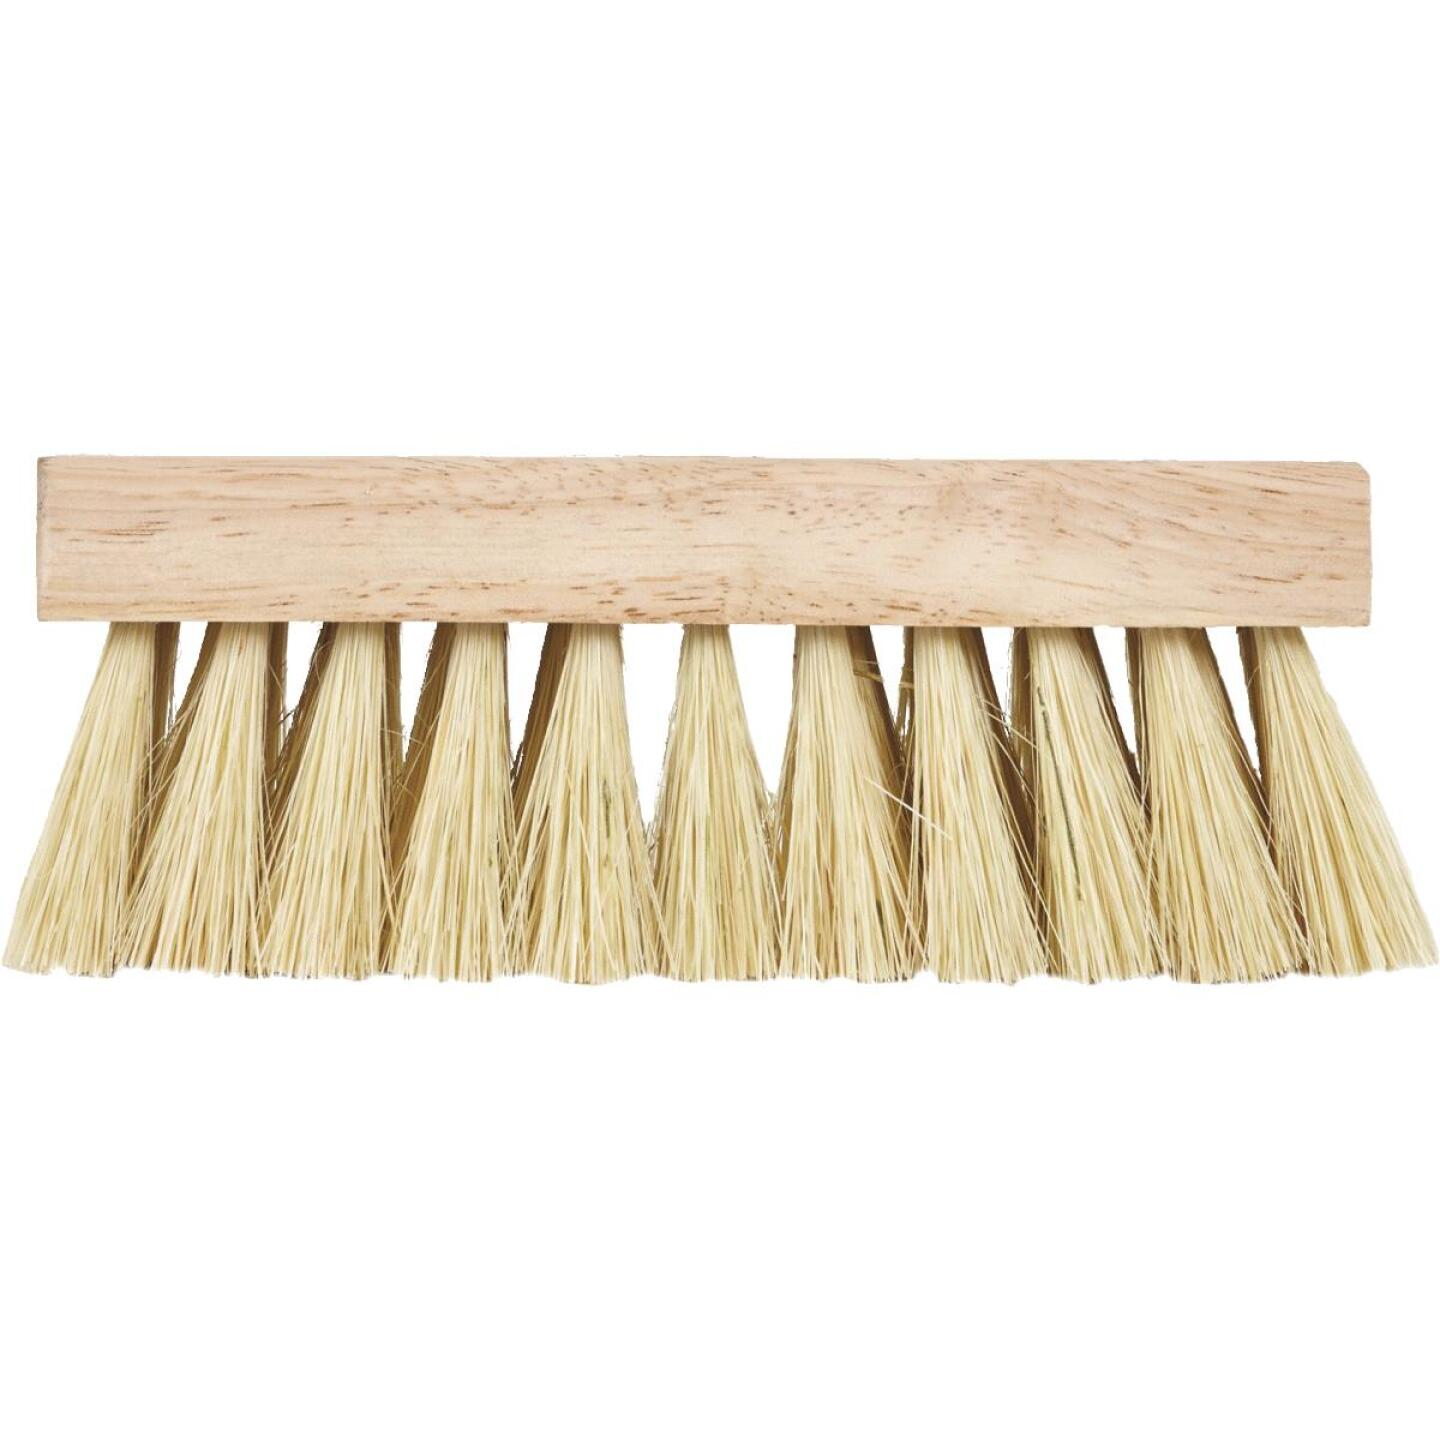 DQB Erie Roof 7 In. x 2 In. Tapered Handle Roof Brush Image 2